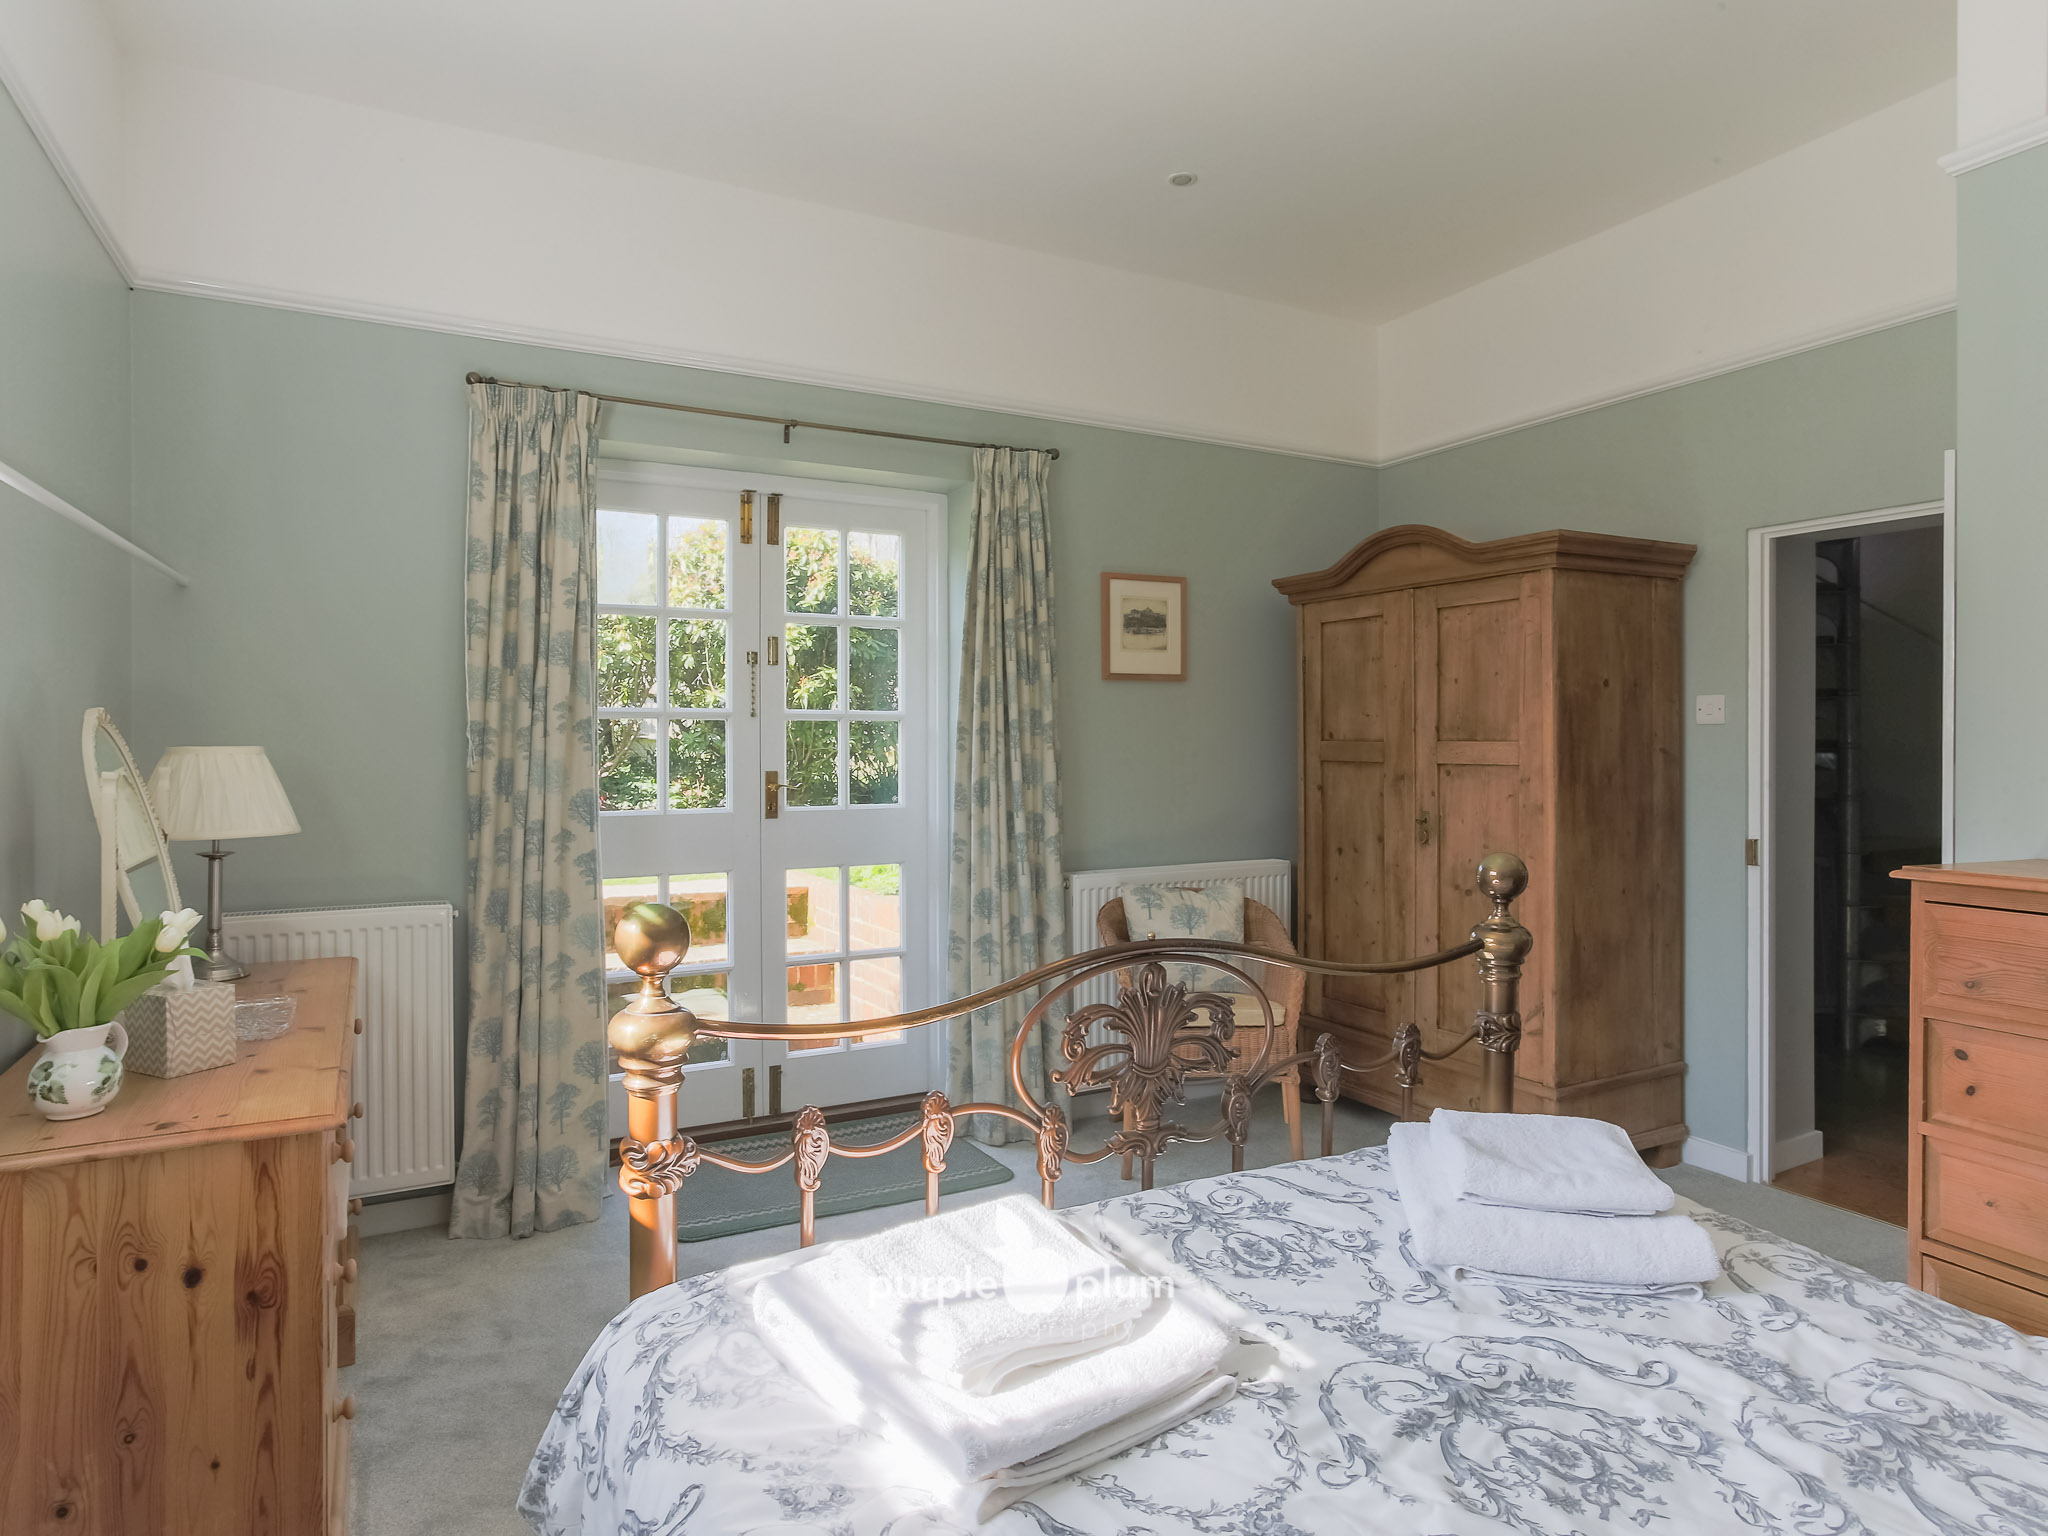 The french doors in the main bedroom lead directly on to the pretty garden